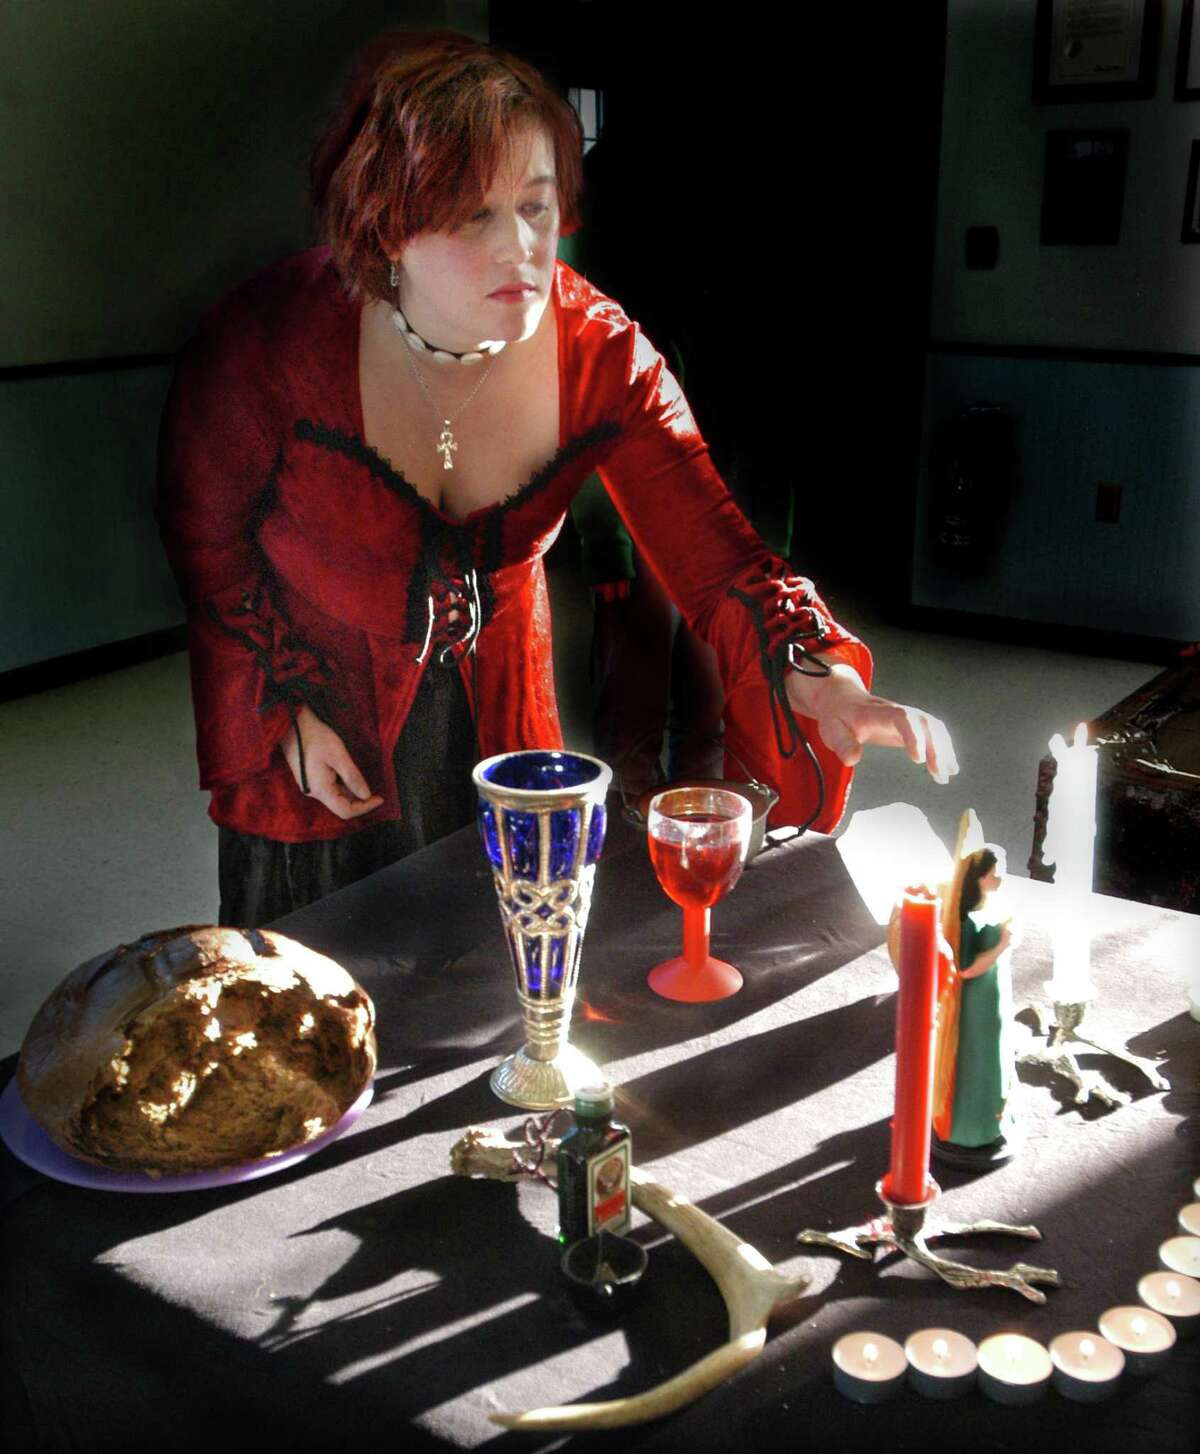 A Pagan/Wiccan celebration in Derby